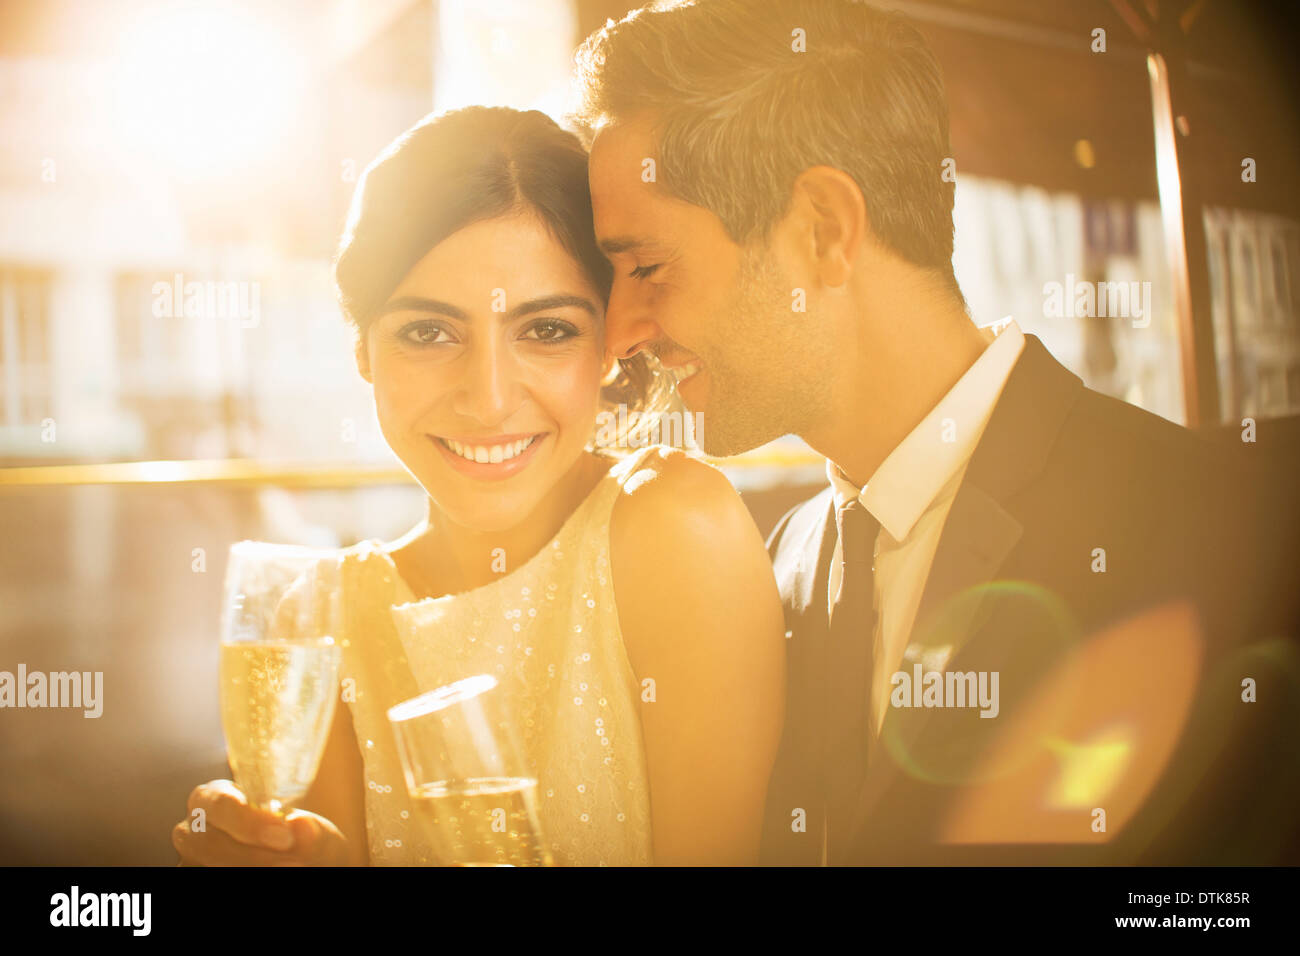 Couple having champagne together - Stock Image